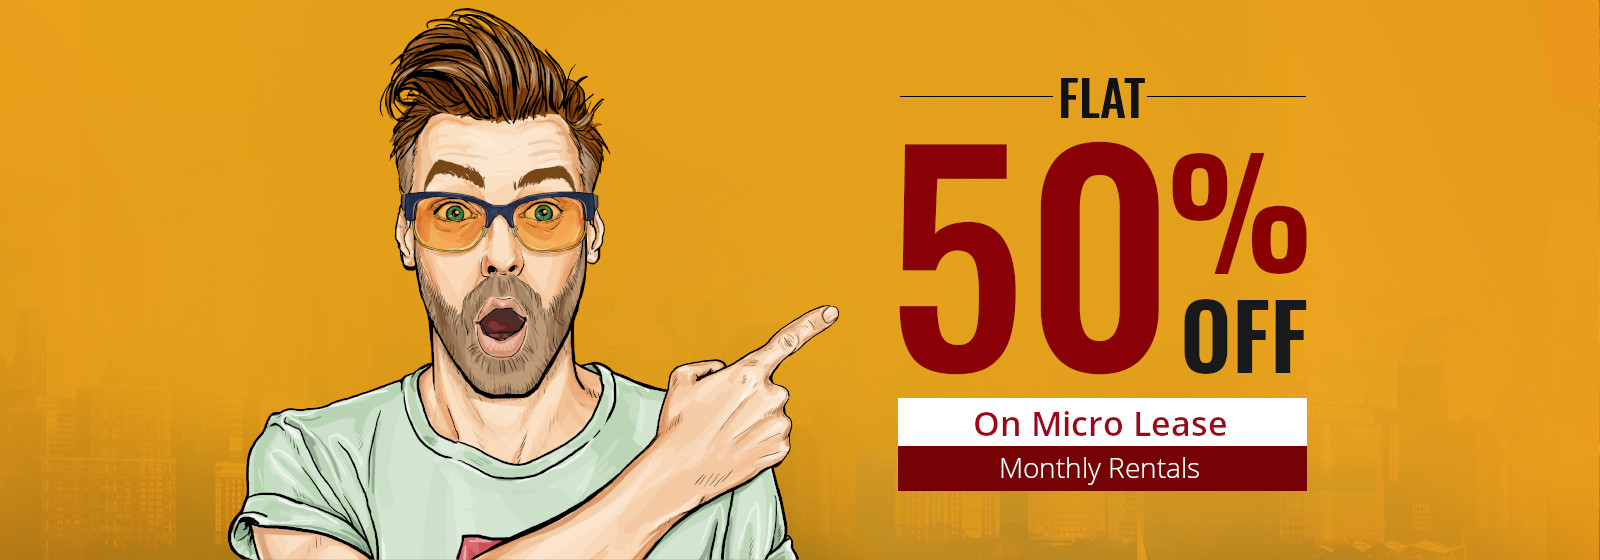 Flat 50% off On Micro Lease Monthly Rentals